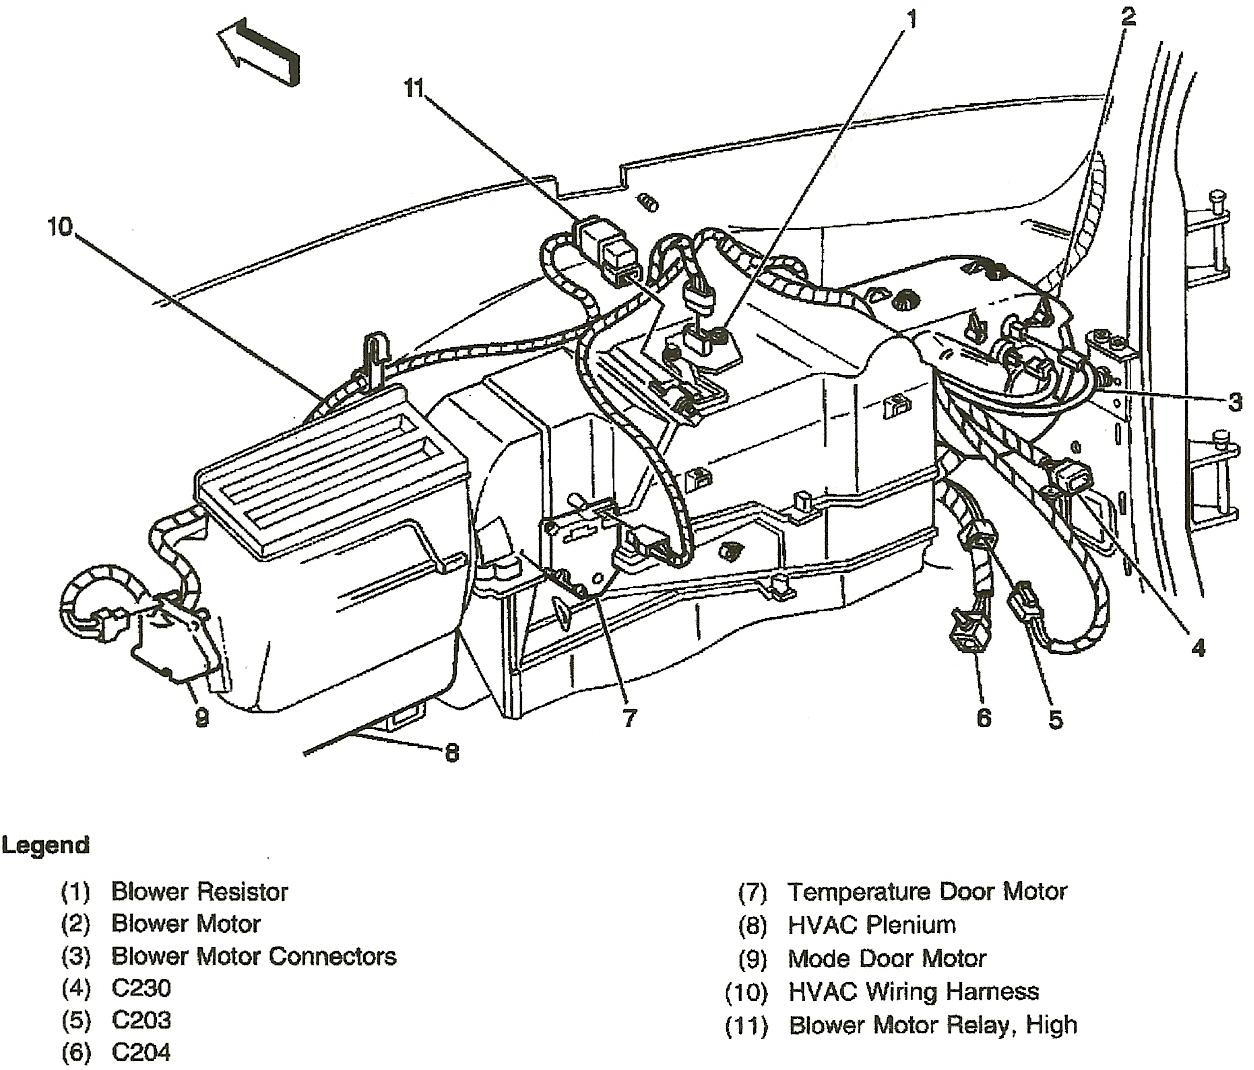 1999 chevrolet suburban blower motor 4 how to test a chevy suburban blower motor my pro street 2007 suburban fuse box diagram at edmiracle.co